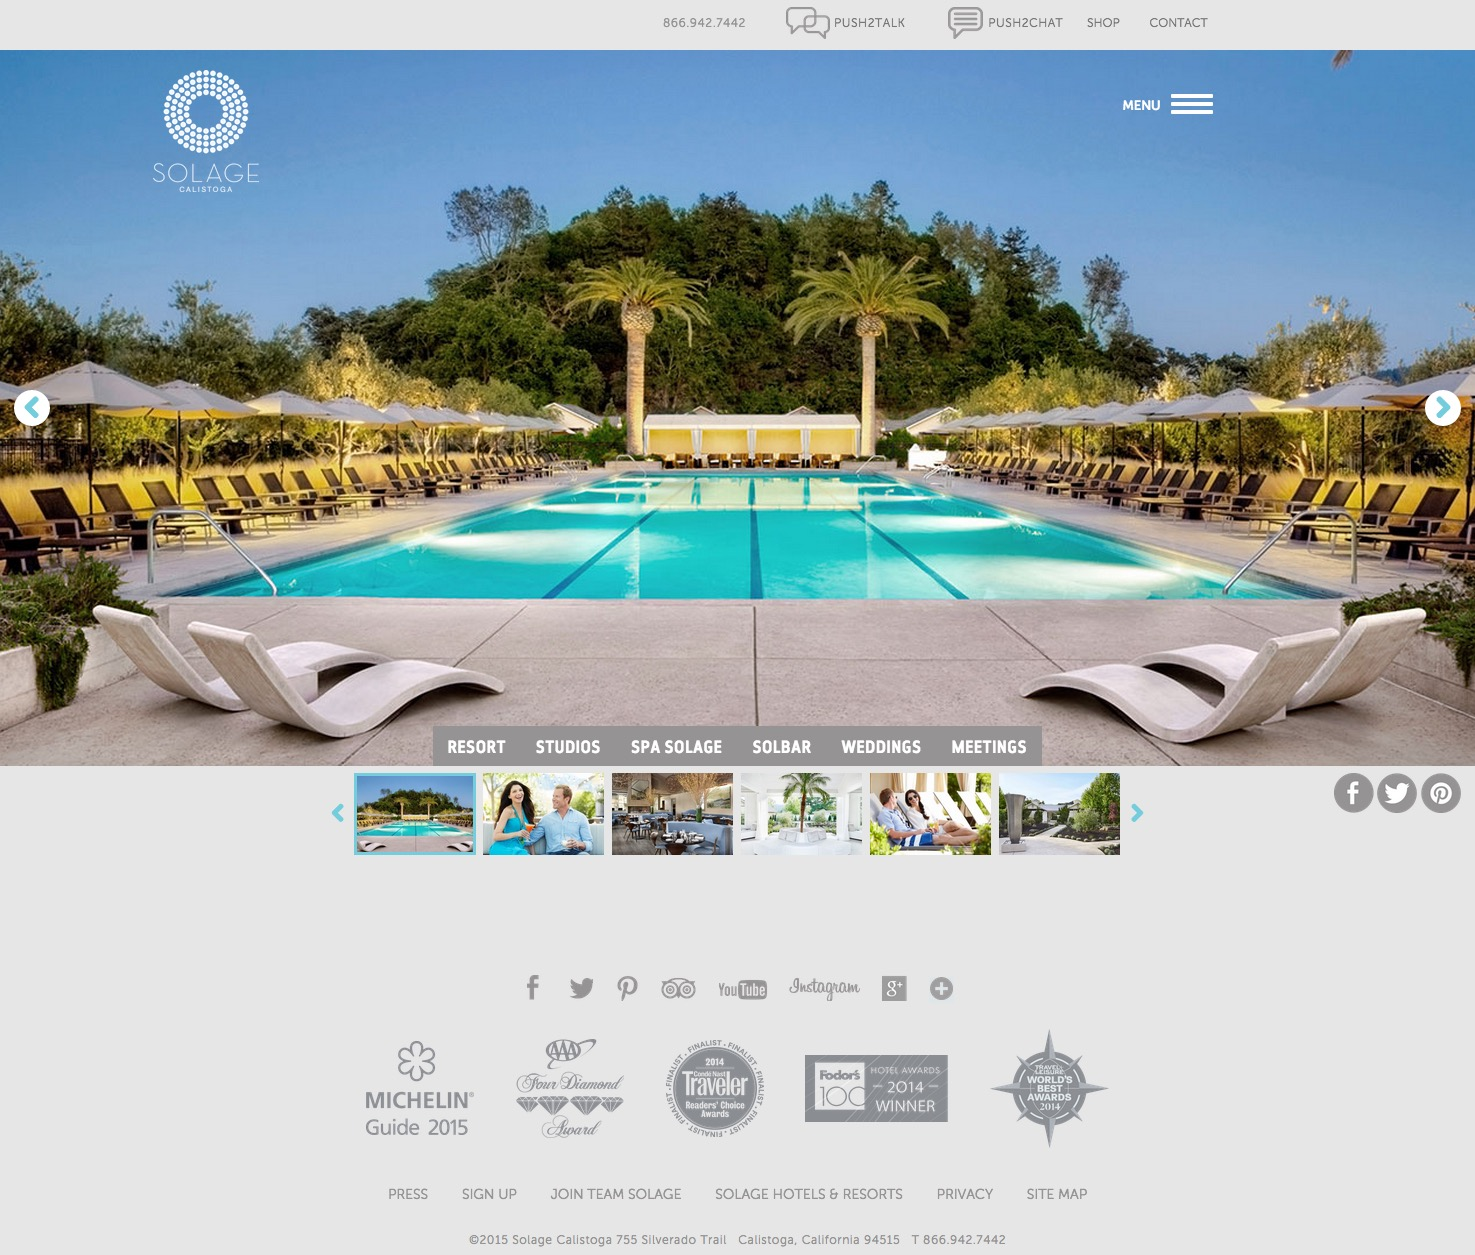 Solage-new-website-photographers6-2